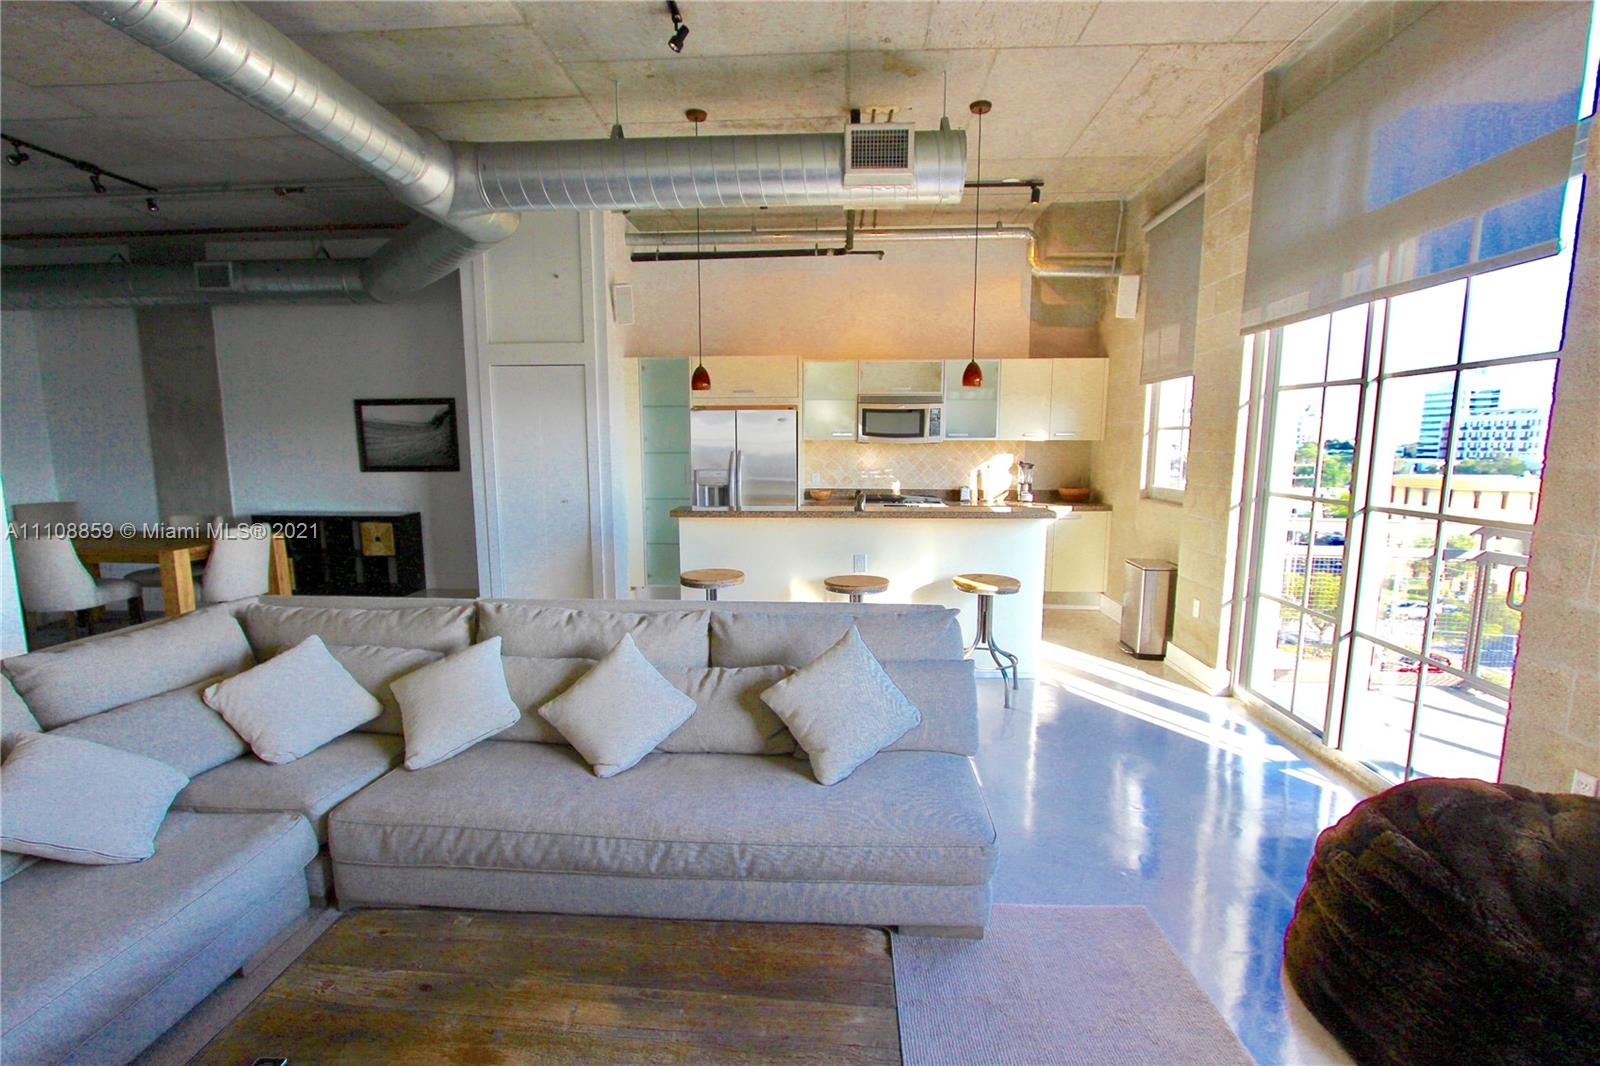 410 NW 1st Ave #504 For Sale A11108859, FL